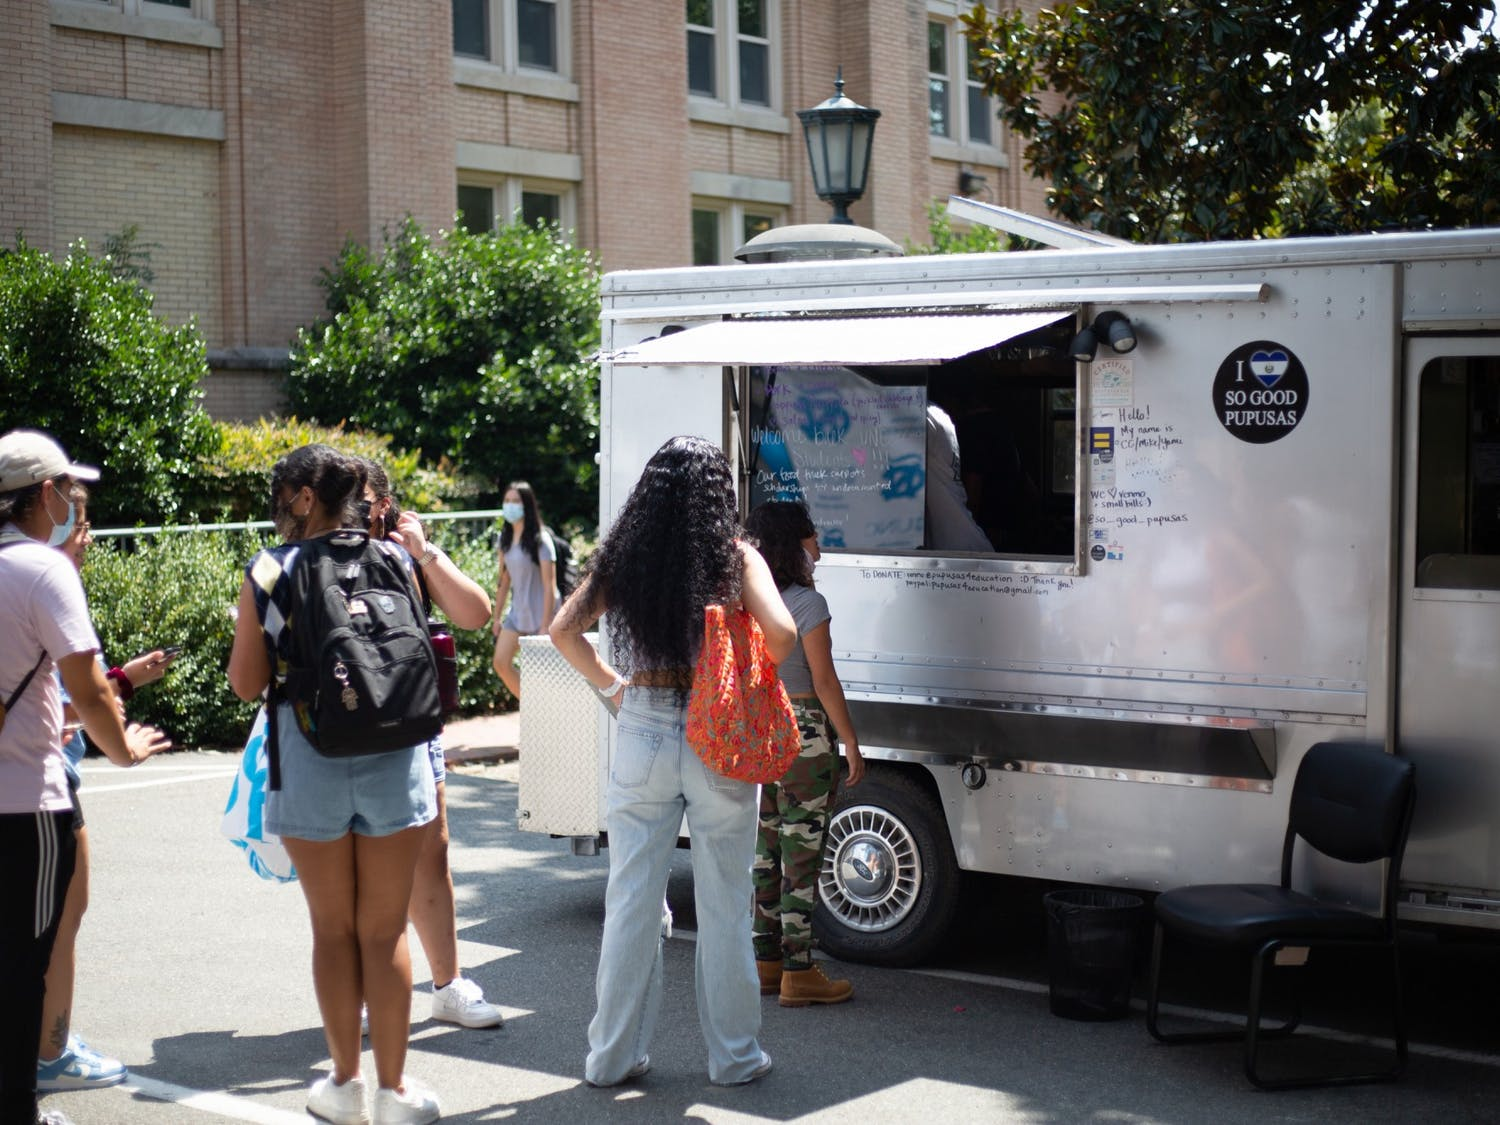 Students line up for pupusas at the Carolina Latinx Center's open house event on Aug. 25.